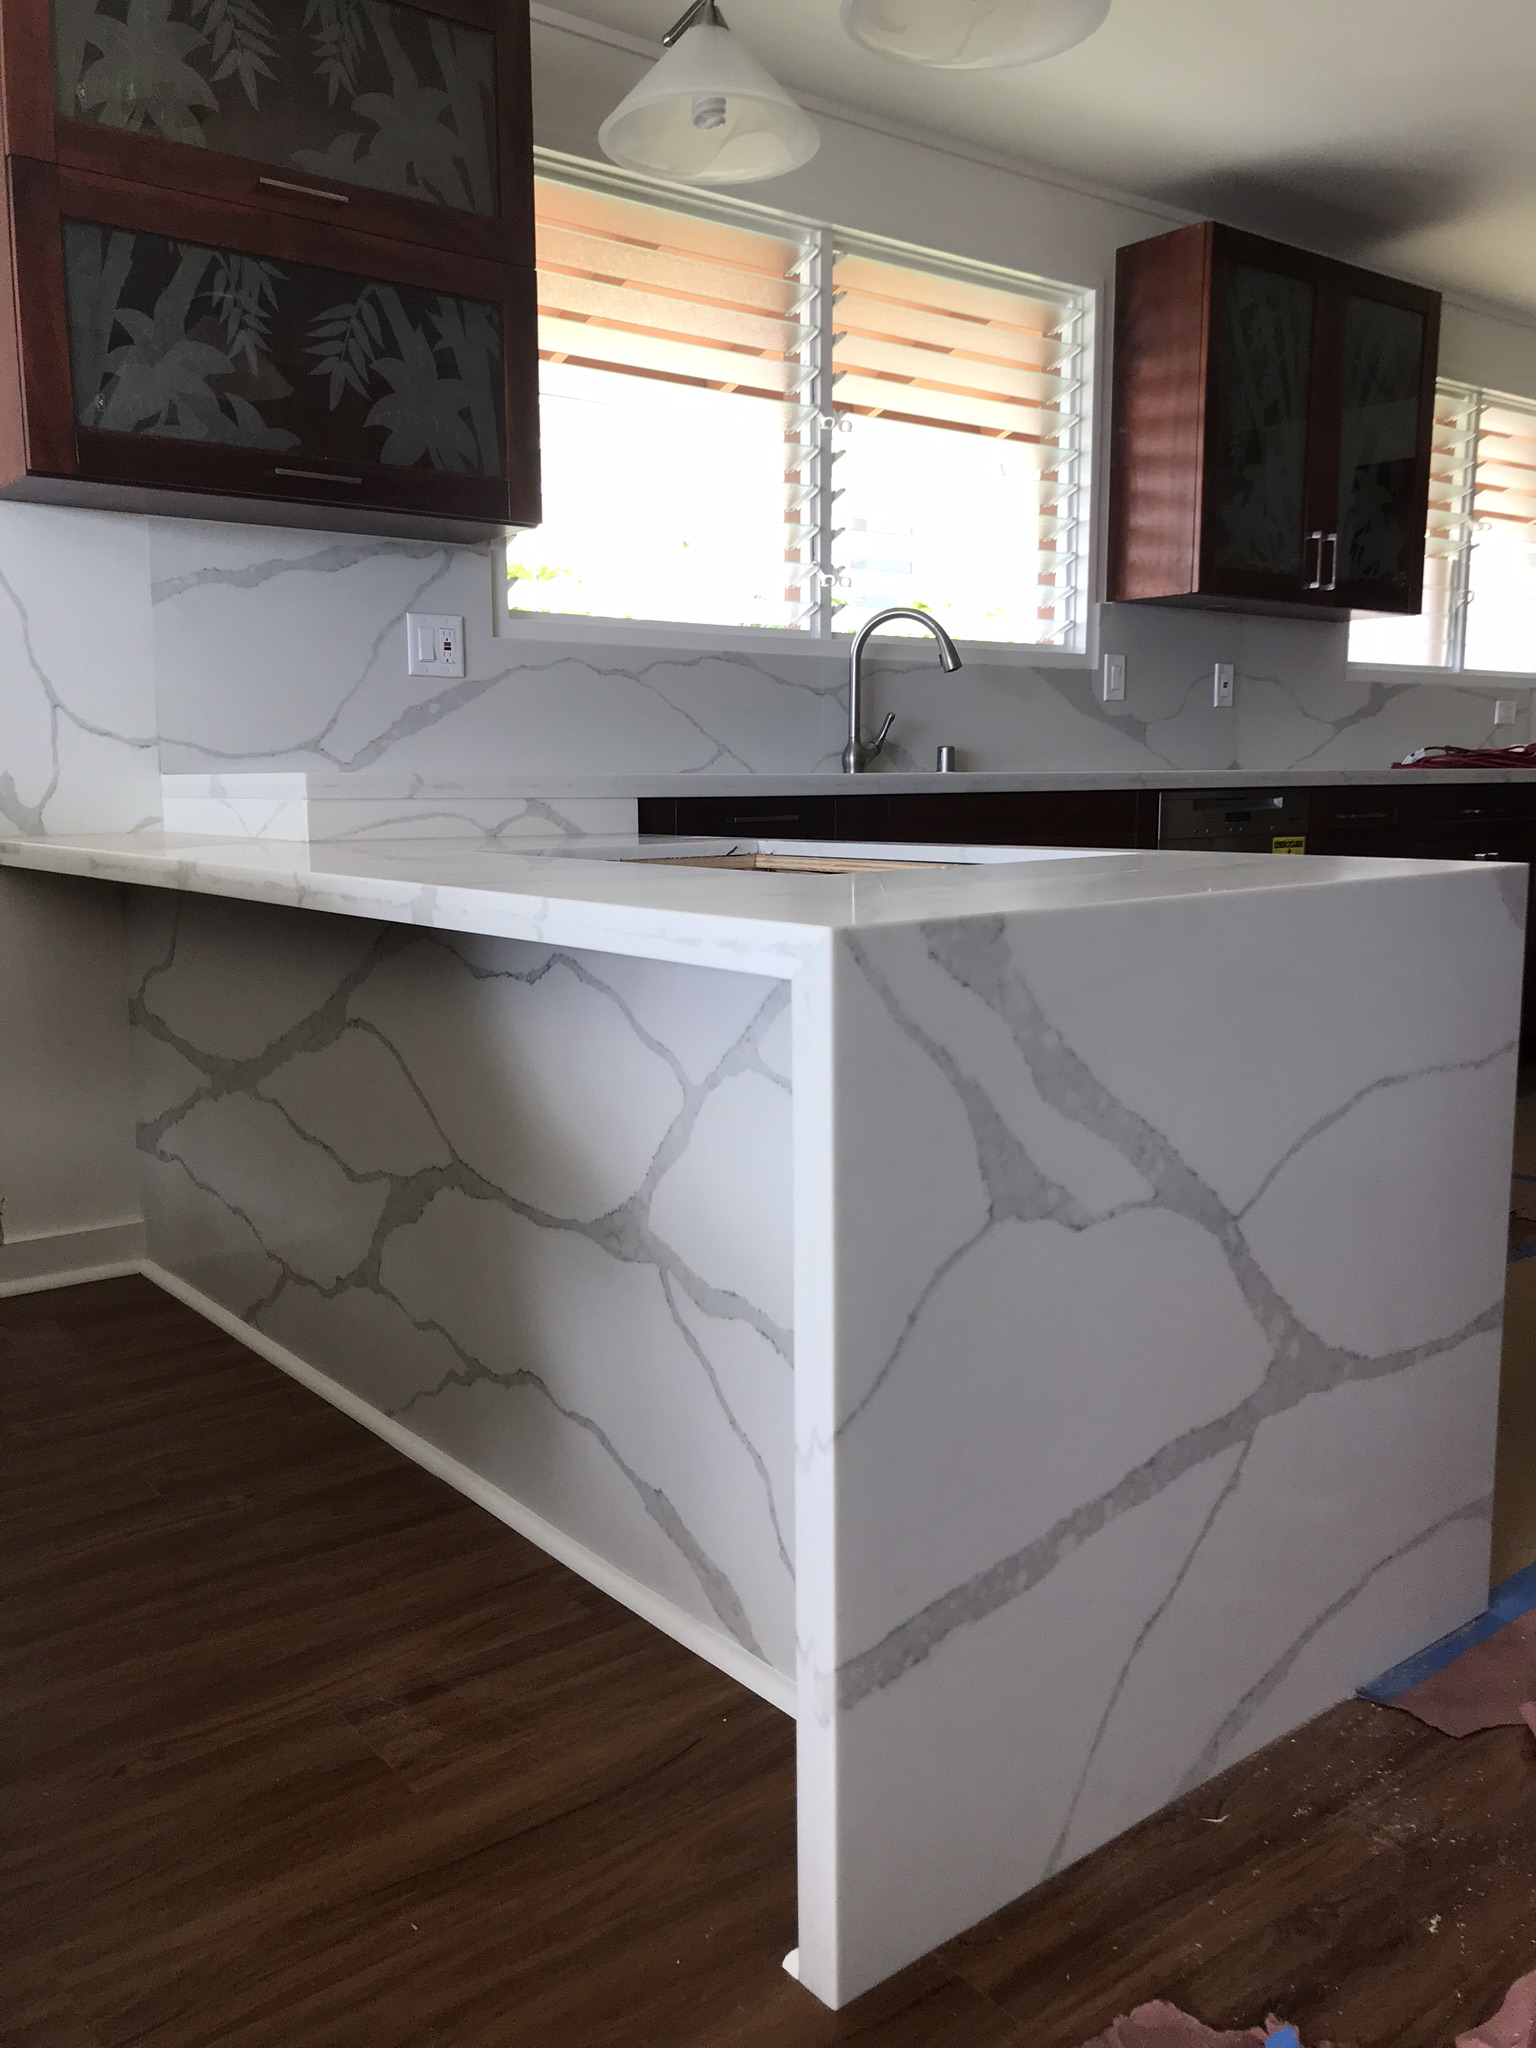 Hawaii Kai Residence - Kitchen counter tops with full-height back splash and wrap around stone with waterfall on peninsula. Veins bookmarked for pattern continuity.